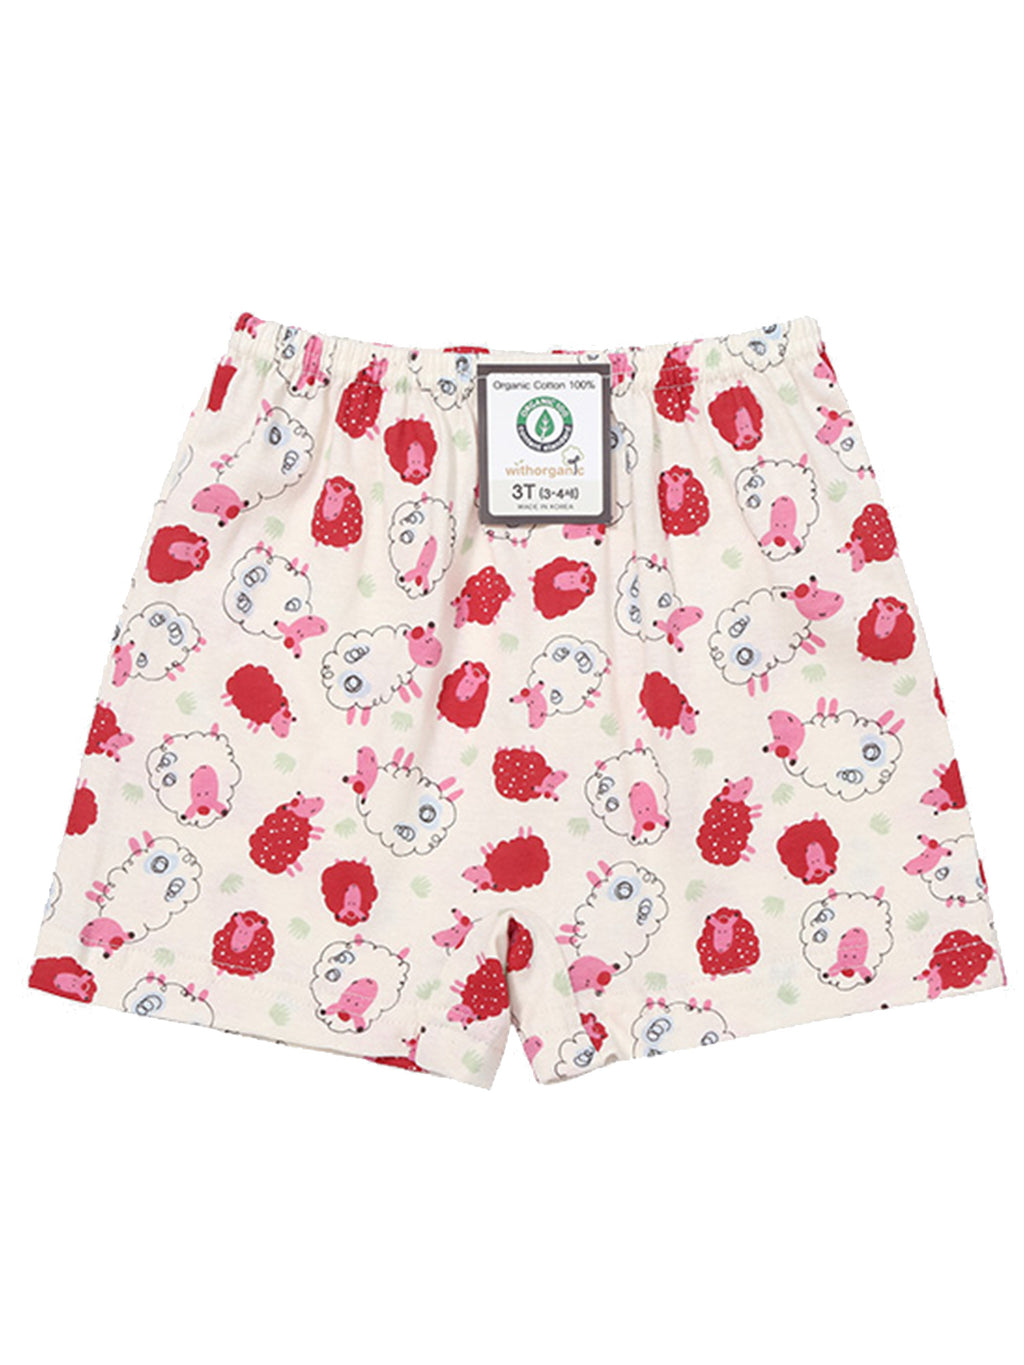 Toddler Girls Boxer Brief - HiOrganic